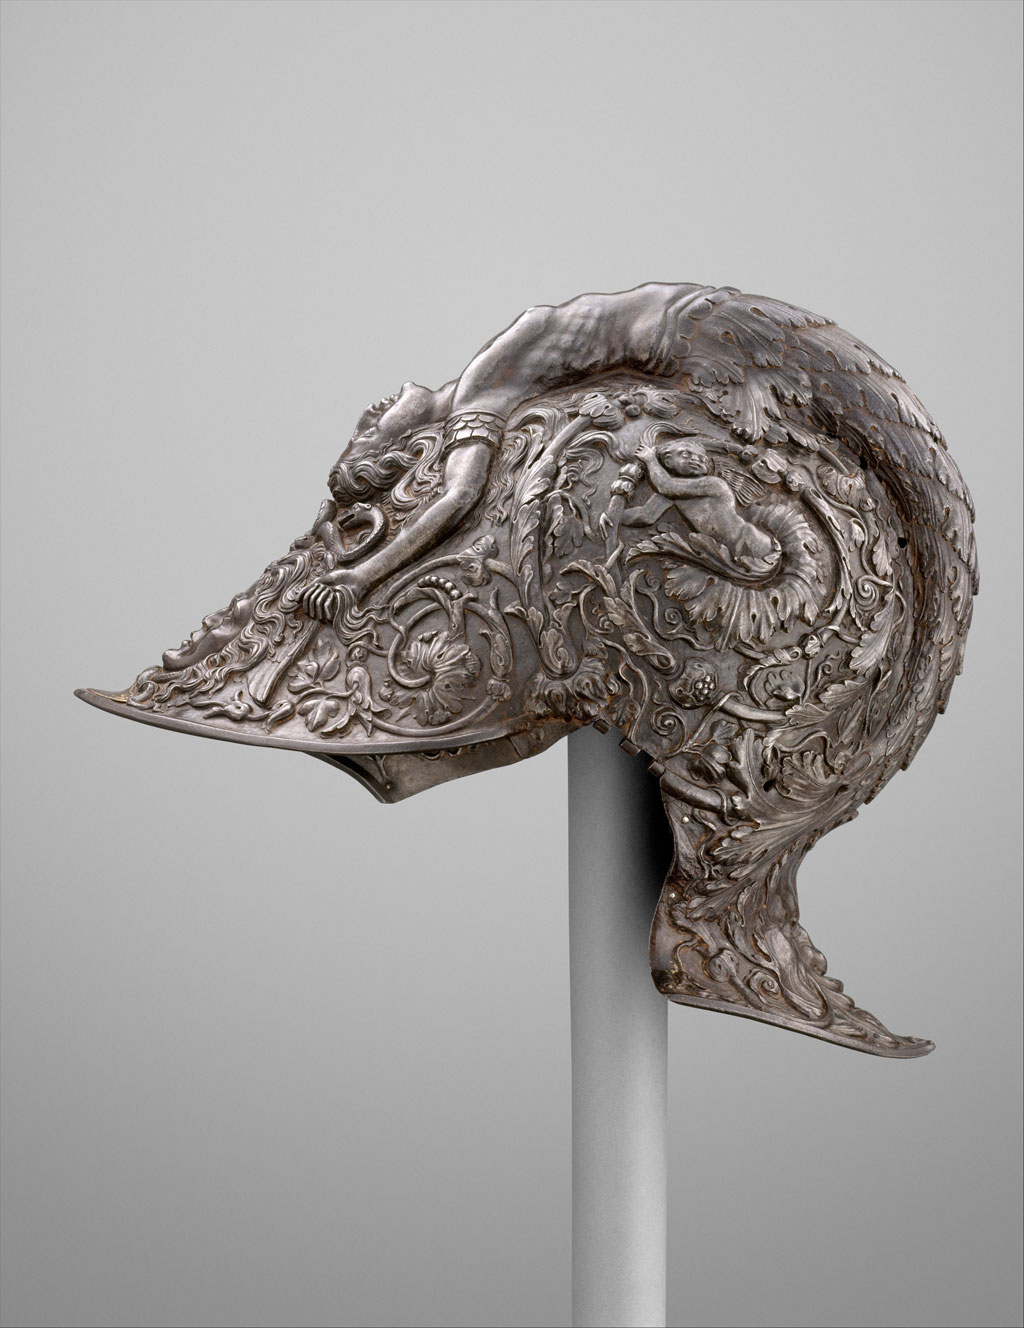 highlights from the met's collection (40)